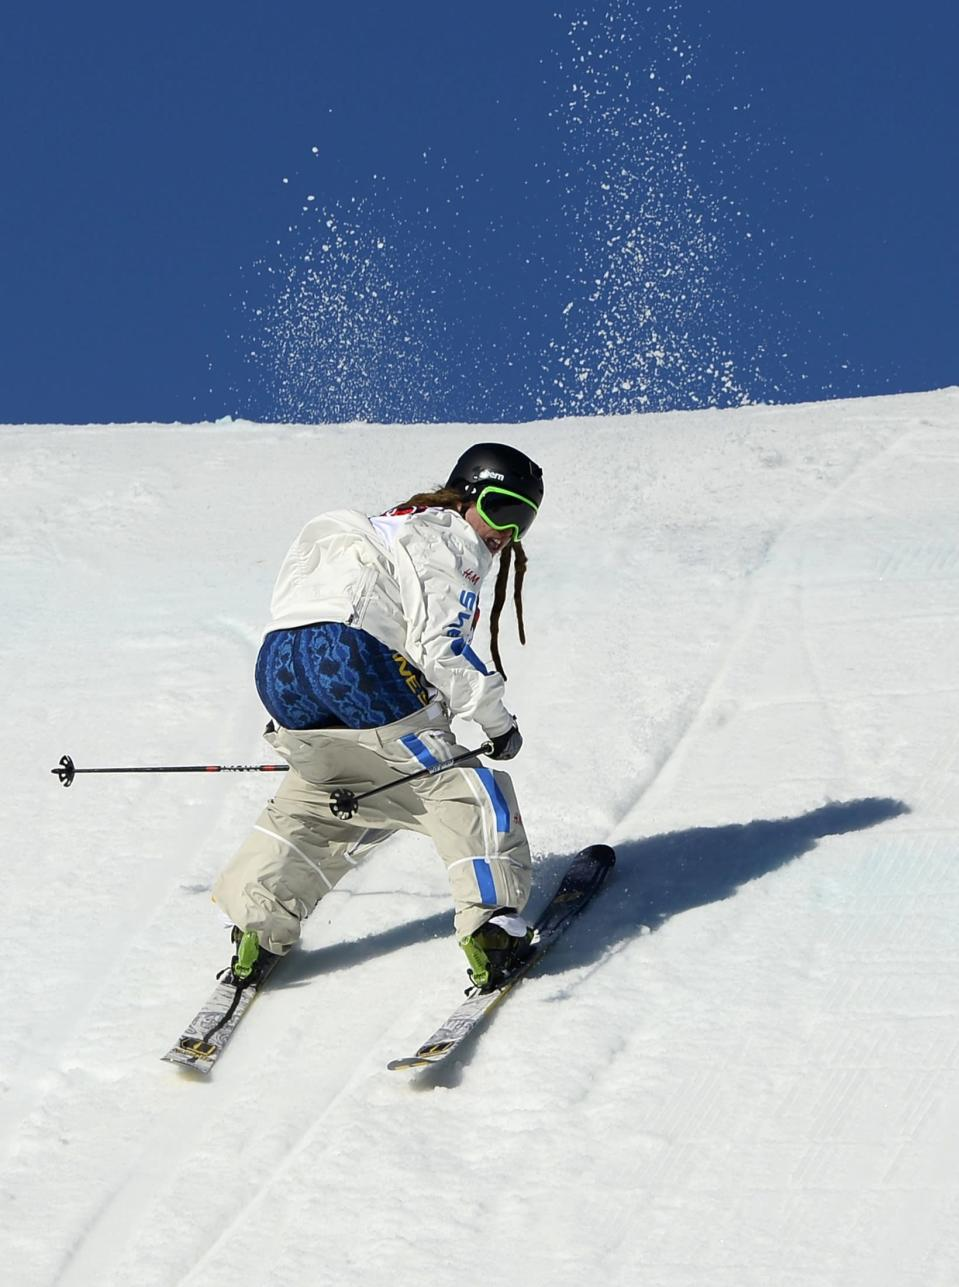 Sweden's Henrik Harlaut slides during the men's freestyle skiing slopestyle qualification round at the 2014 Sochi Winter Olympic Games in Rosa Khutor February 13, 2014. REUTERS/Dylan Martinez (RUSSIA - Tags: SPORT SKIING OLYMPICS TPX IMAGES OF THE DAY)